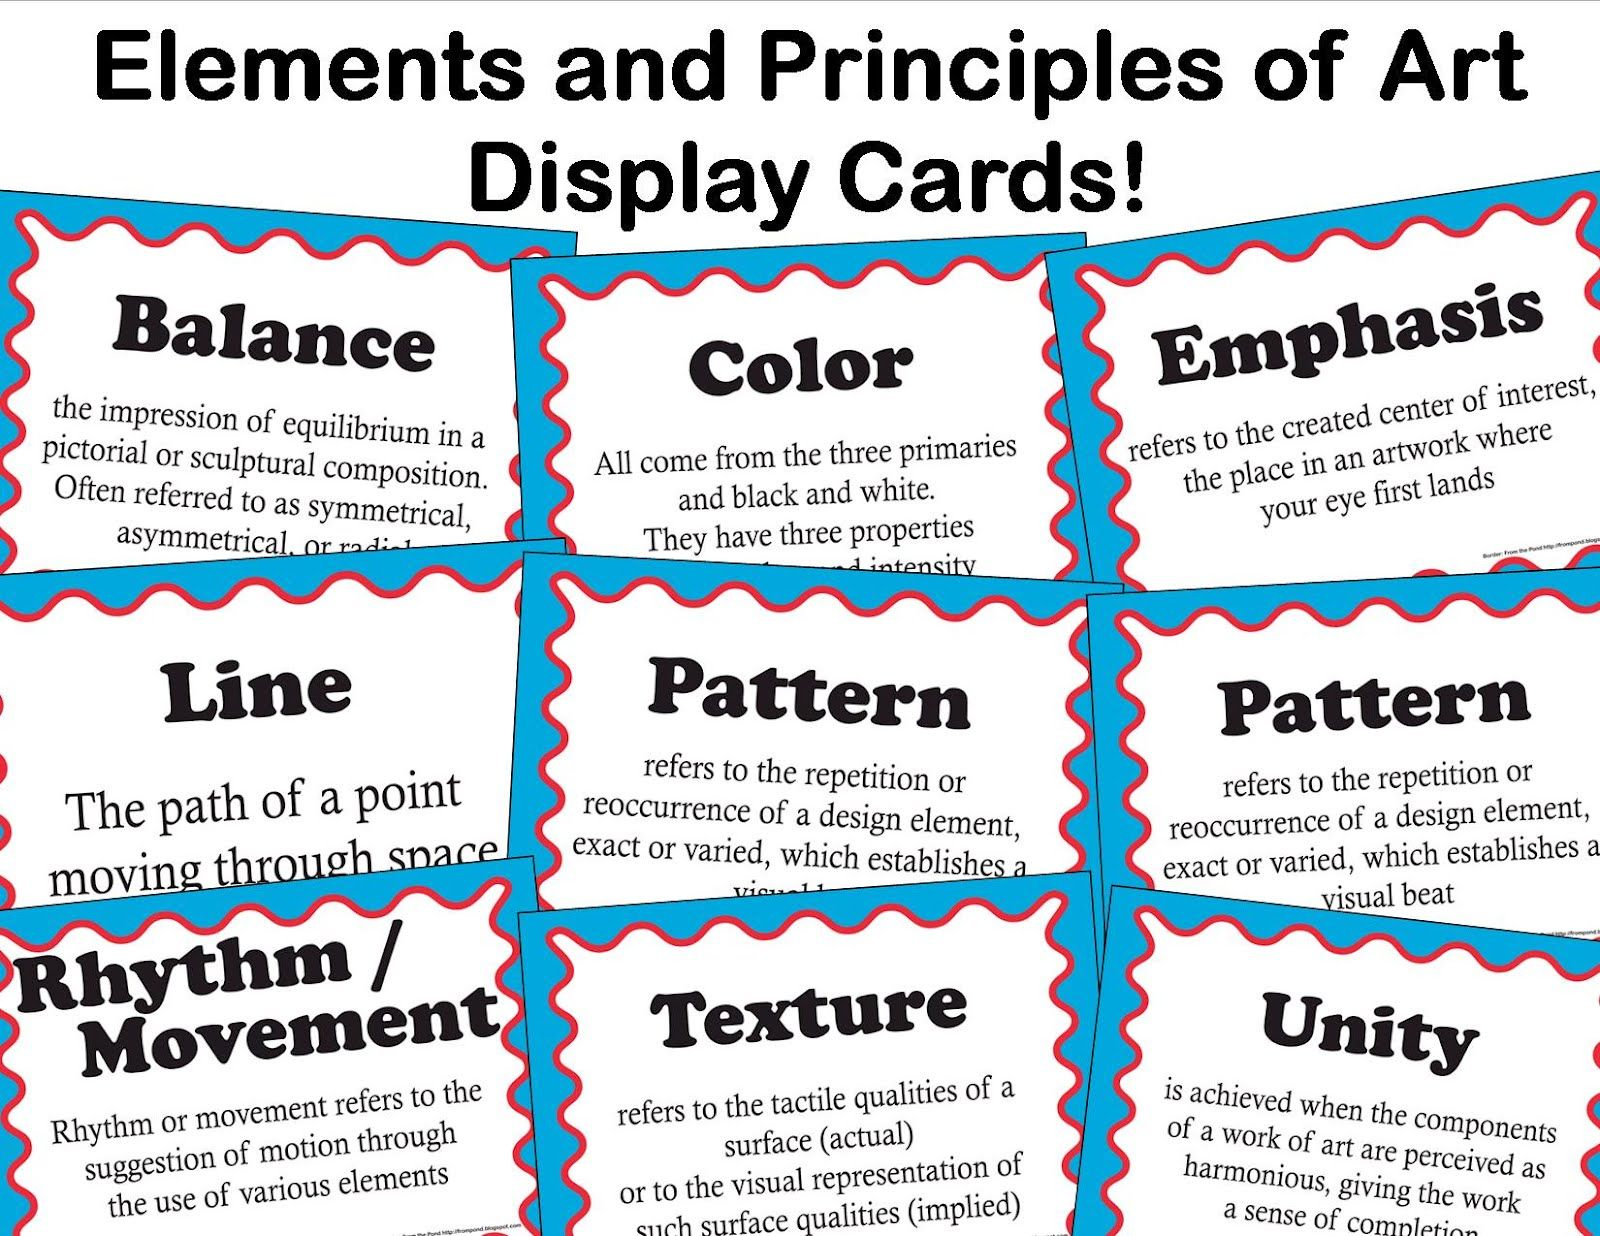 Elements And Principles Of Art Display Cards From Artful